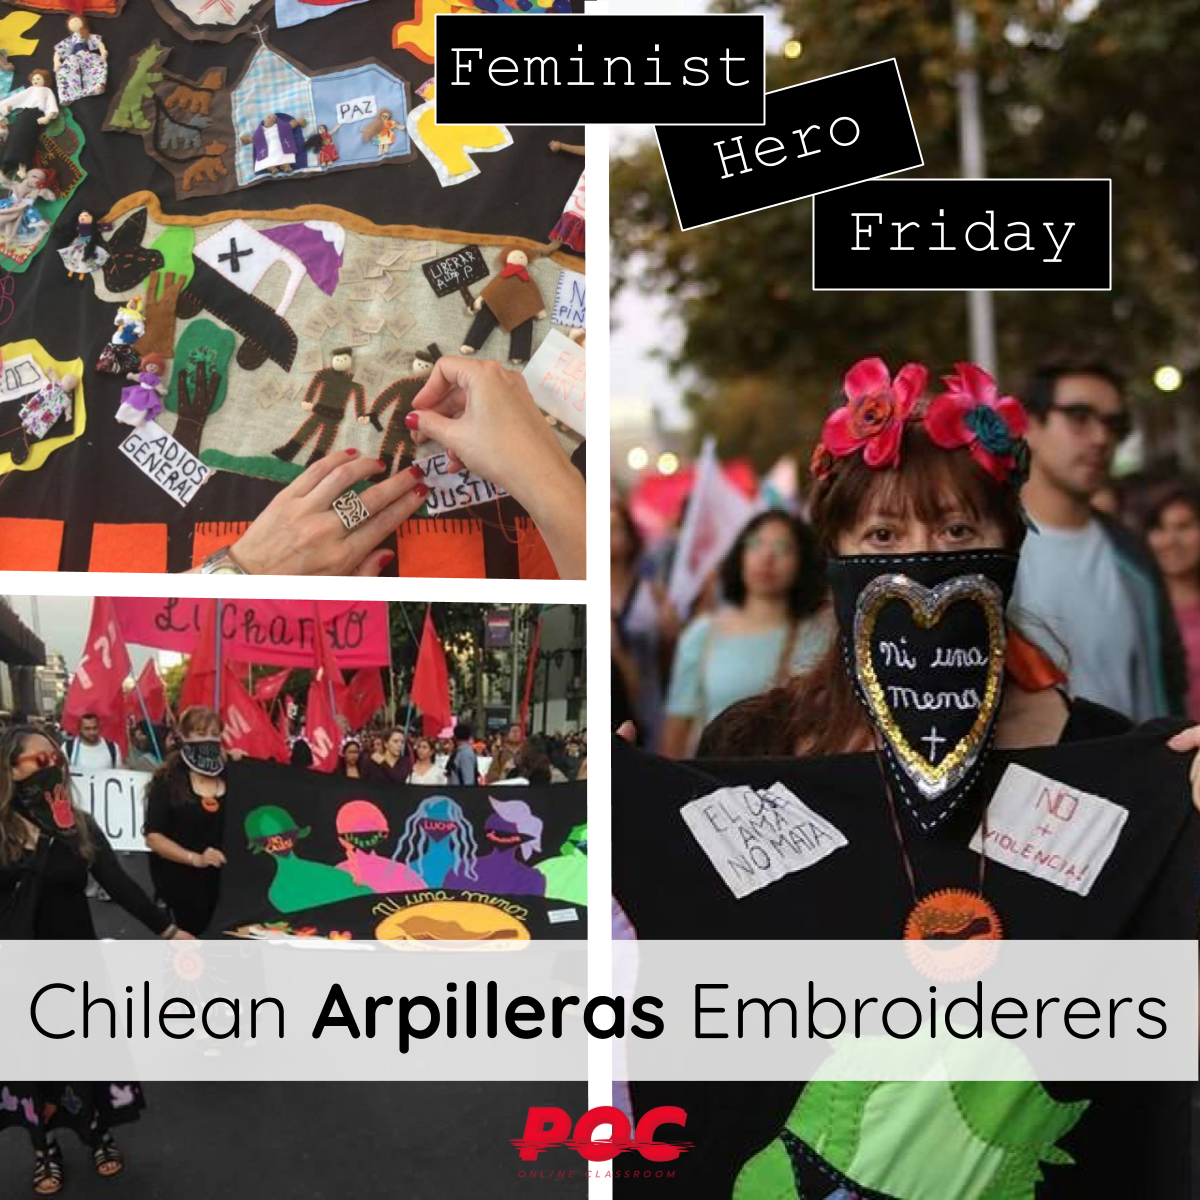 """Three images from top left: two hands embroidering a quilt with people, mountains, and signs; a woman with flowers in her hair and her mouth covered by a bandana holding an embroidered banner reading """"no violencia;"""" and three women, with their mouths covered by black bandanas, holding a large embroidered banner with a series of colorful individuals embroidered on it. At the top of the image are three text boxes reading """"Feminist Hero Friday."""" At the bottom is a larger text box reading """"Chilean Arpilleras Embroiderers."""" The red POC logo is at the bottom. All images via  Memorarte facebook page ."""